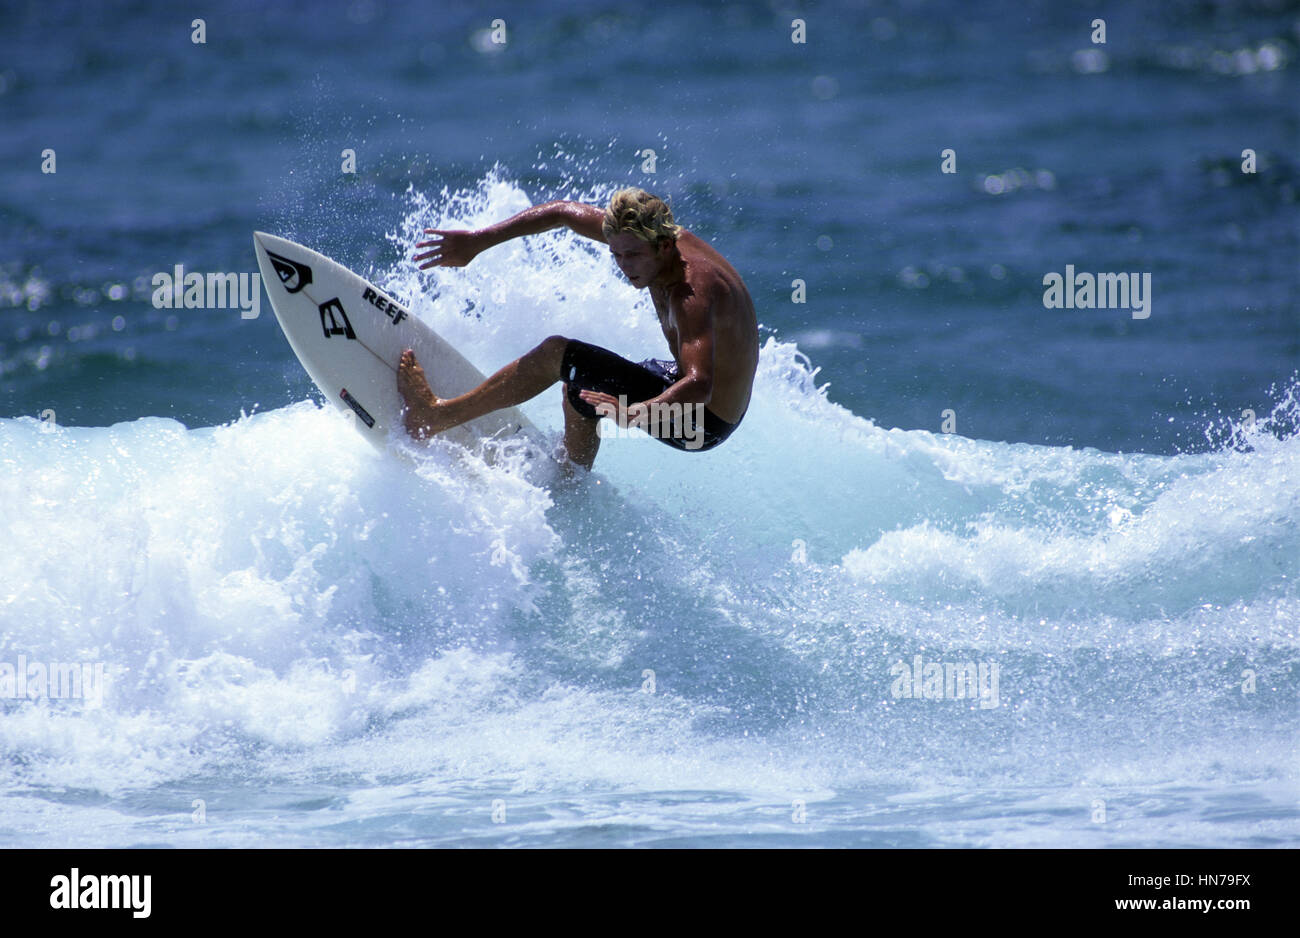 Surferturns vers le sommet de la vague Photo Stock